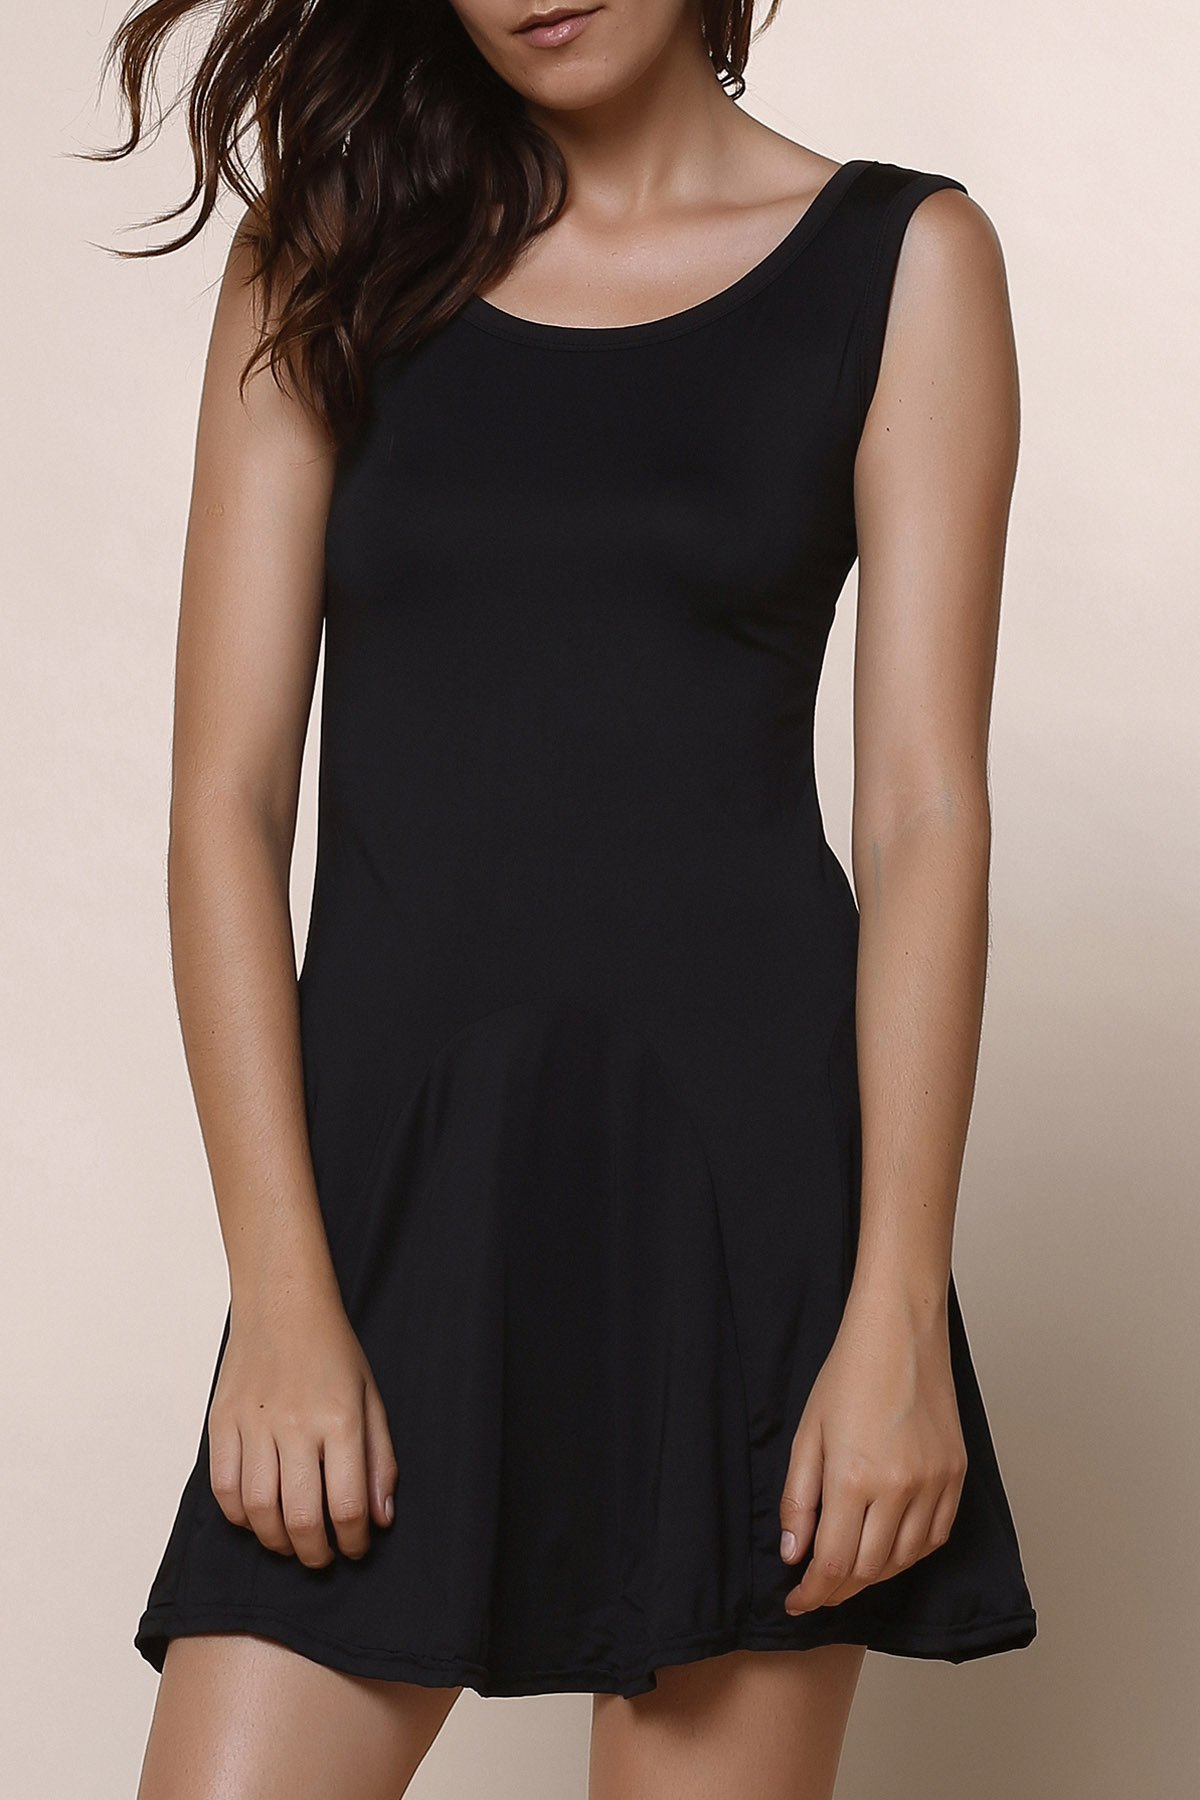 Brief Style Sleeveless Scoop Collar Solid Color Women's Dress